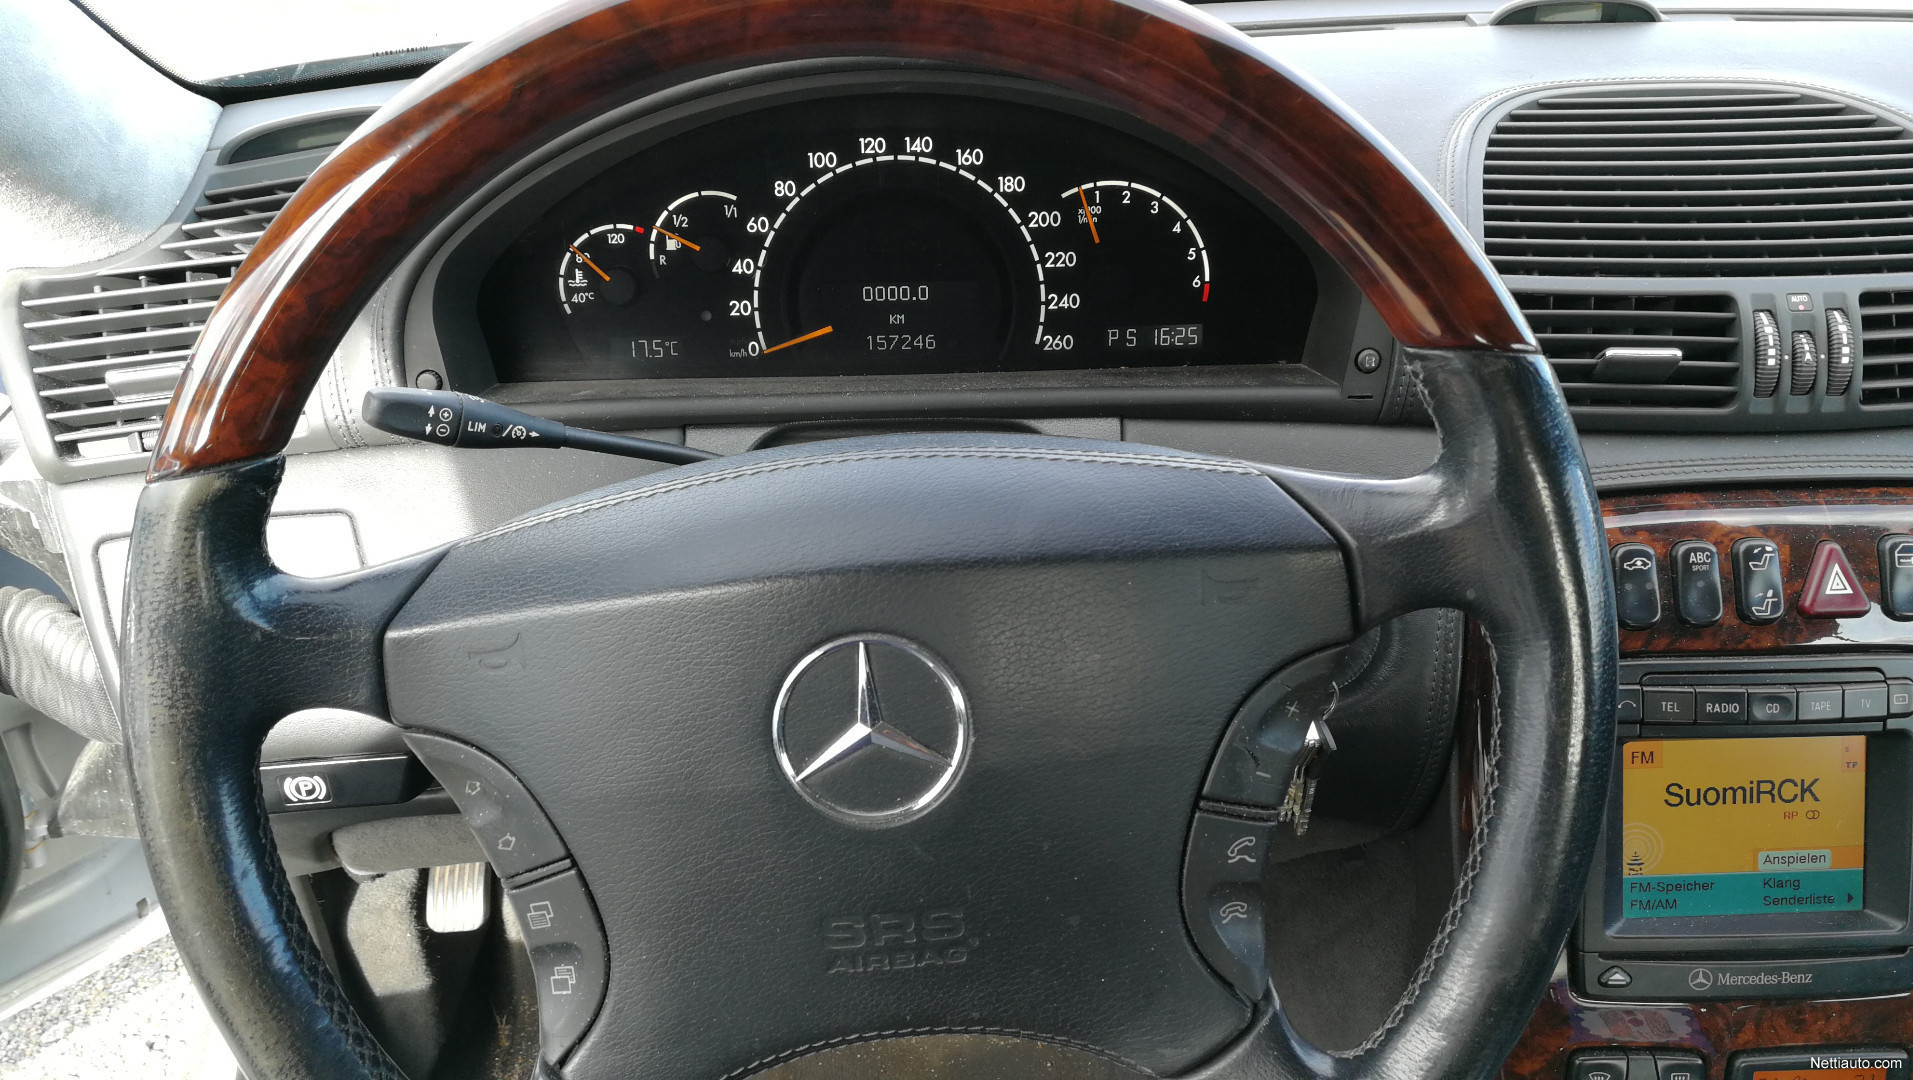 Mercedes Benz Cl 500 Coupe 2d A Coup 2000 Used Vehicle Nettiauto E Previous Next